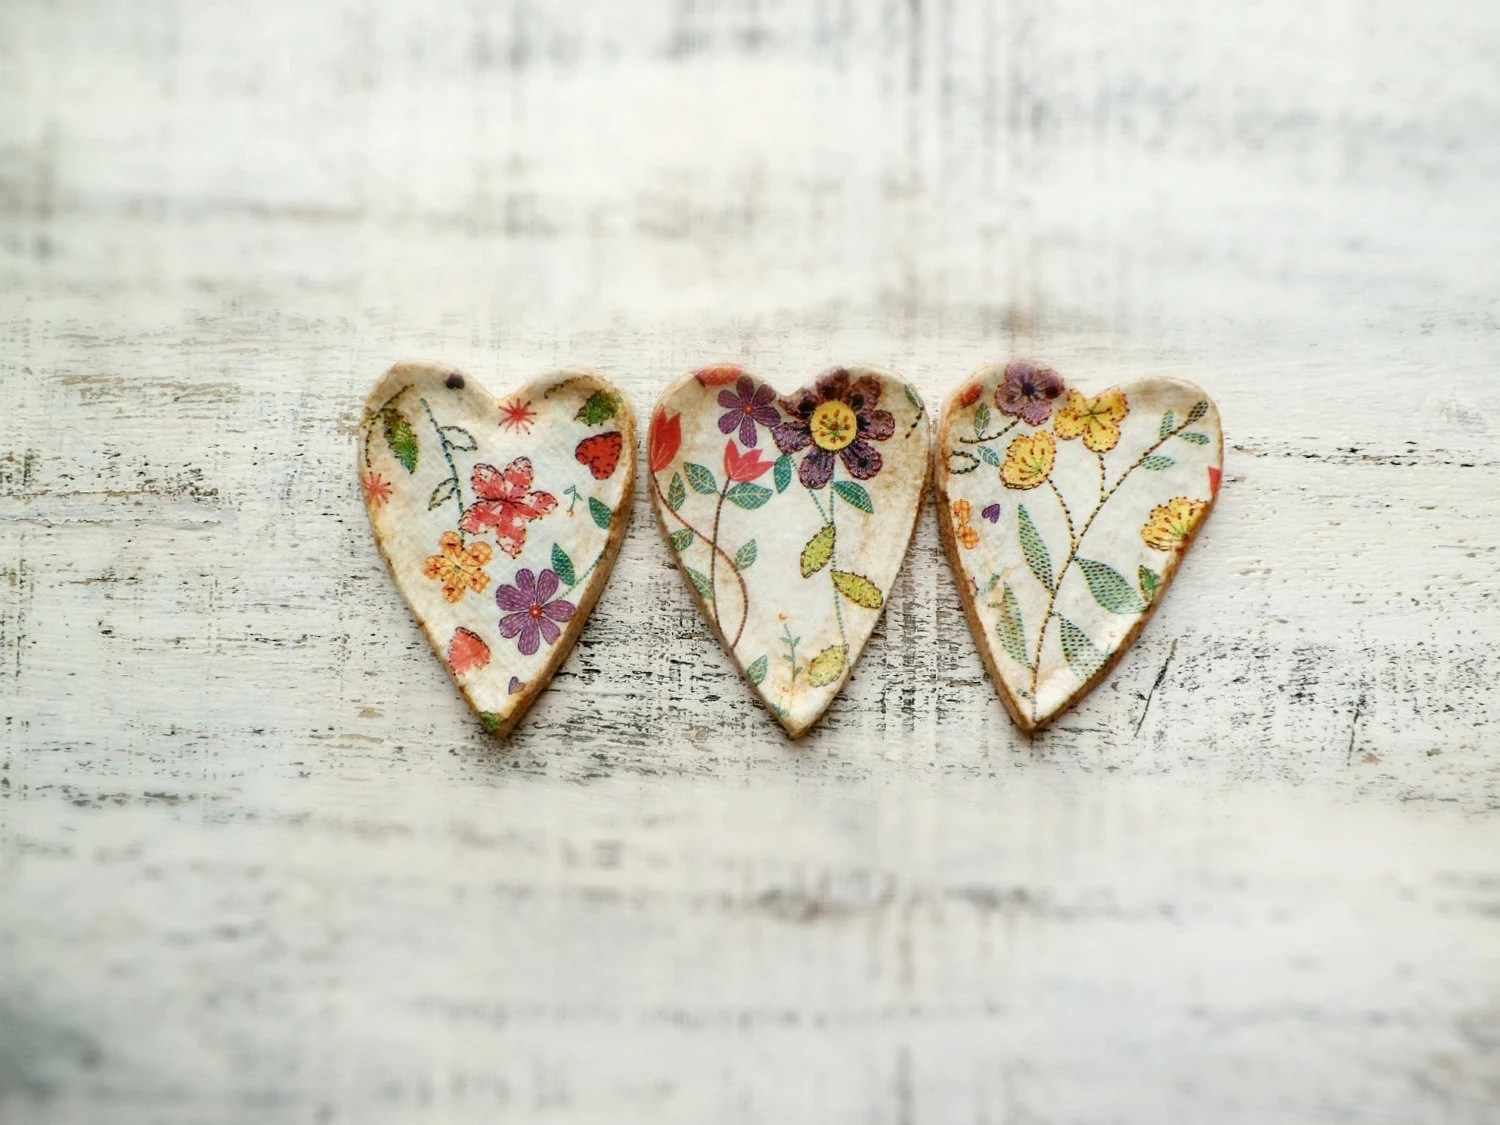 Heart magnet shabby chic cottage chic rustic home decor - HandyHappyHearts